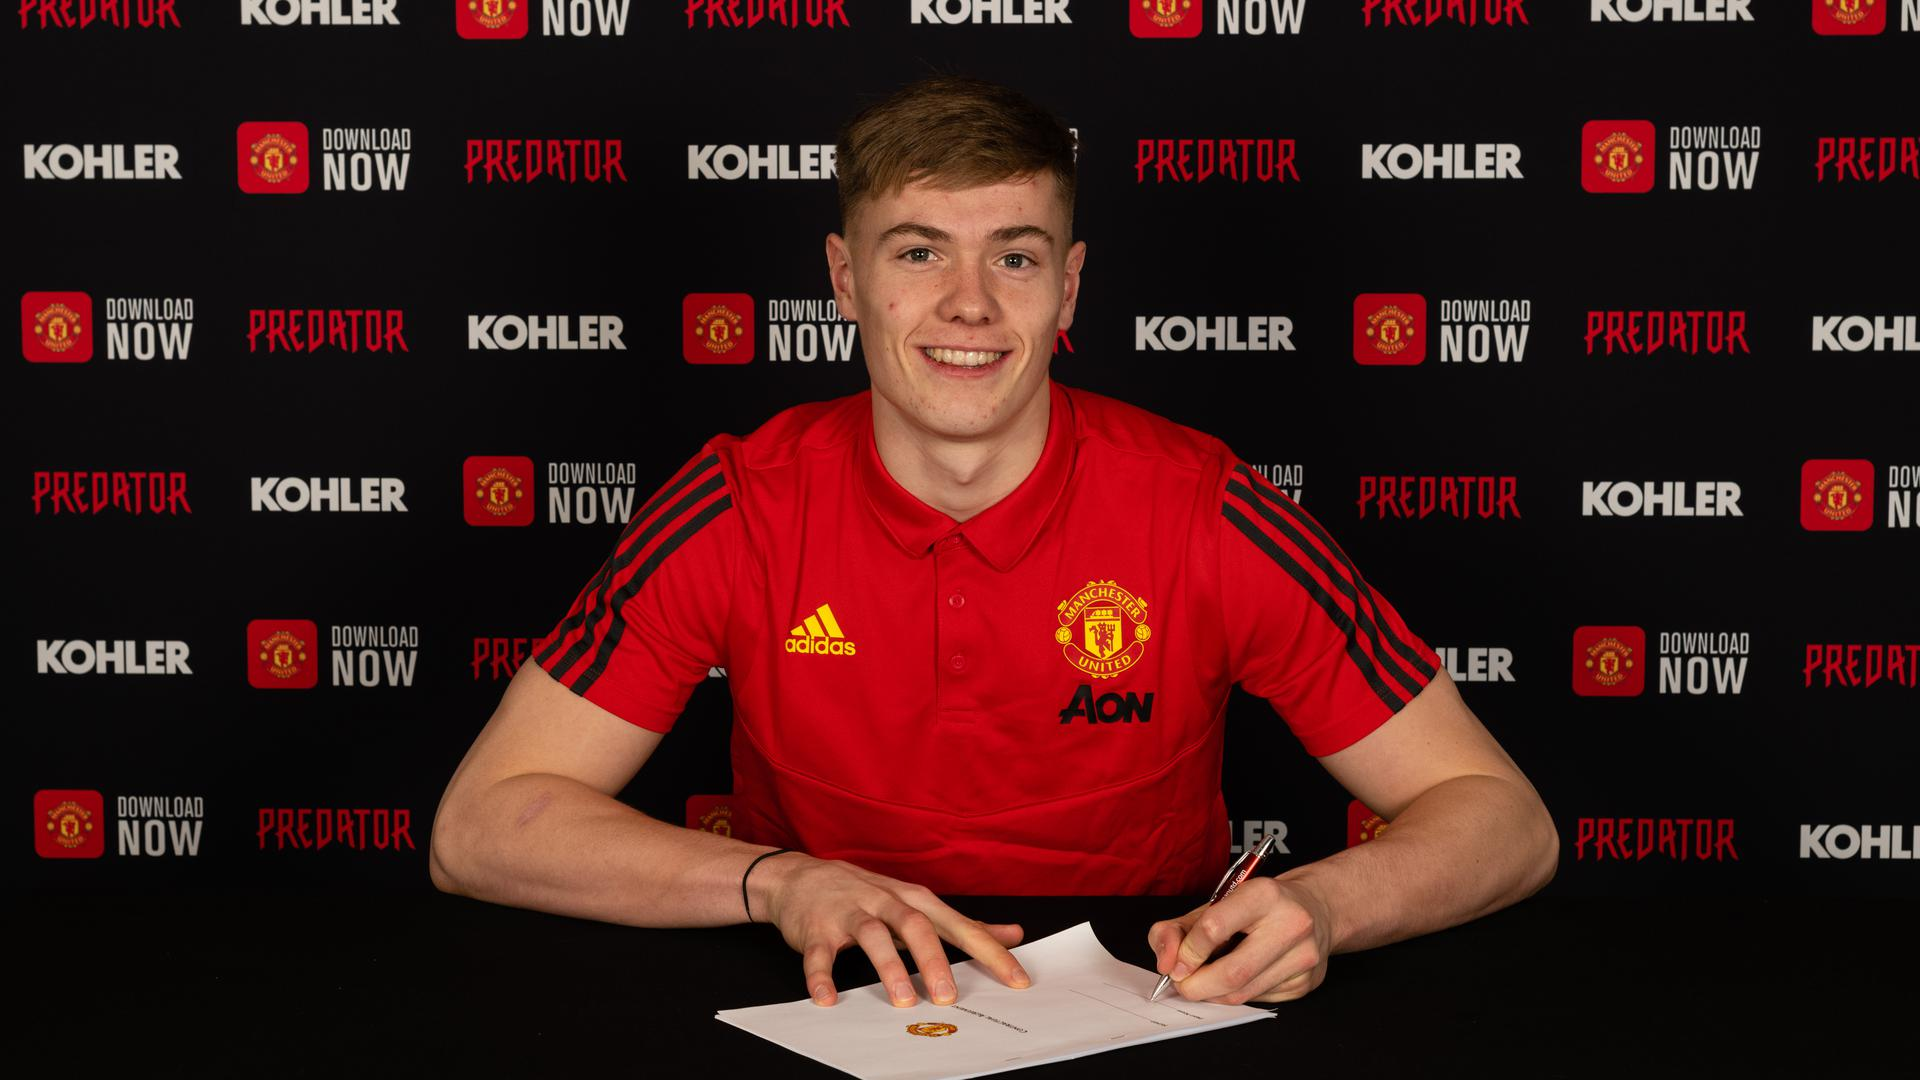 Nathan Bishop signs a contract with Manchester United at ATC on 30 January 2020. Photographer: Ashley Donelon. (Manchester United website)